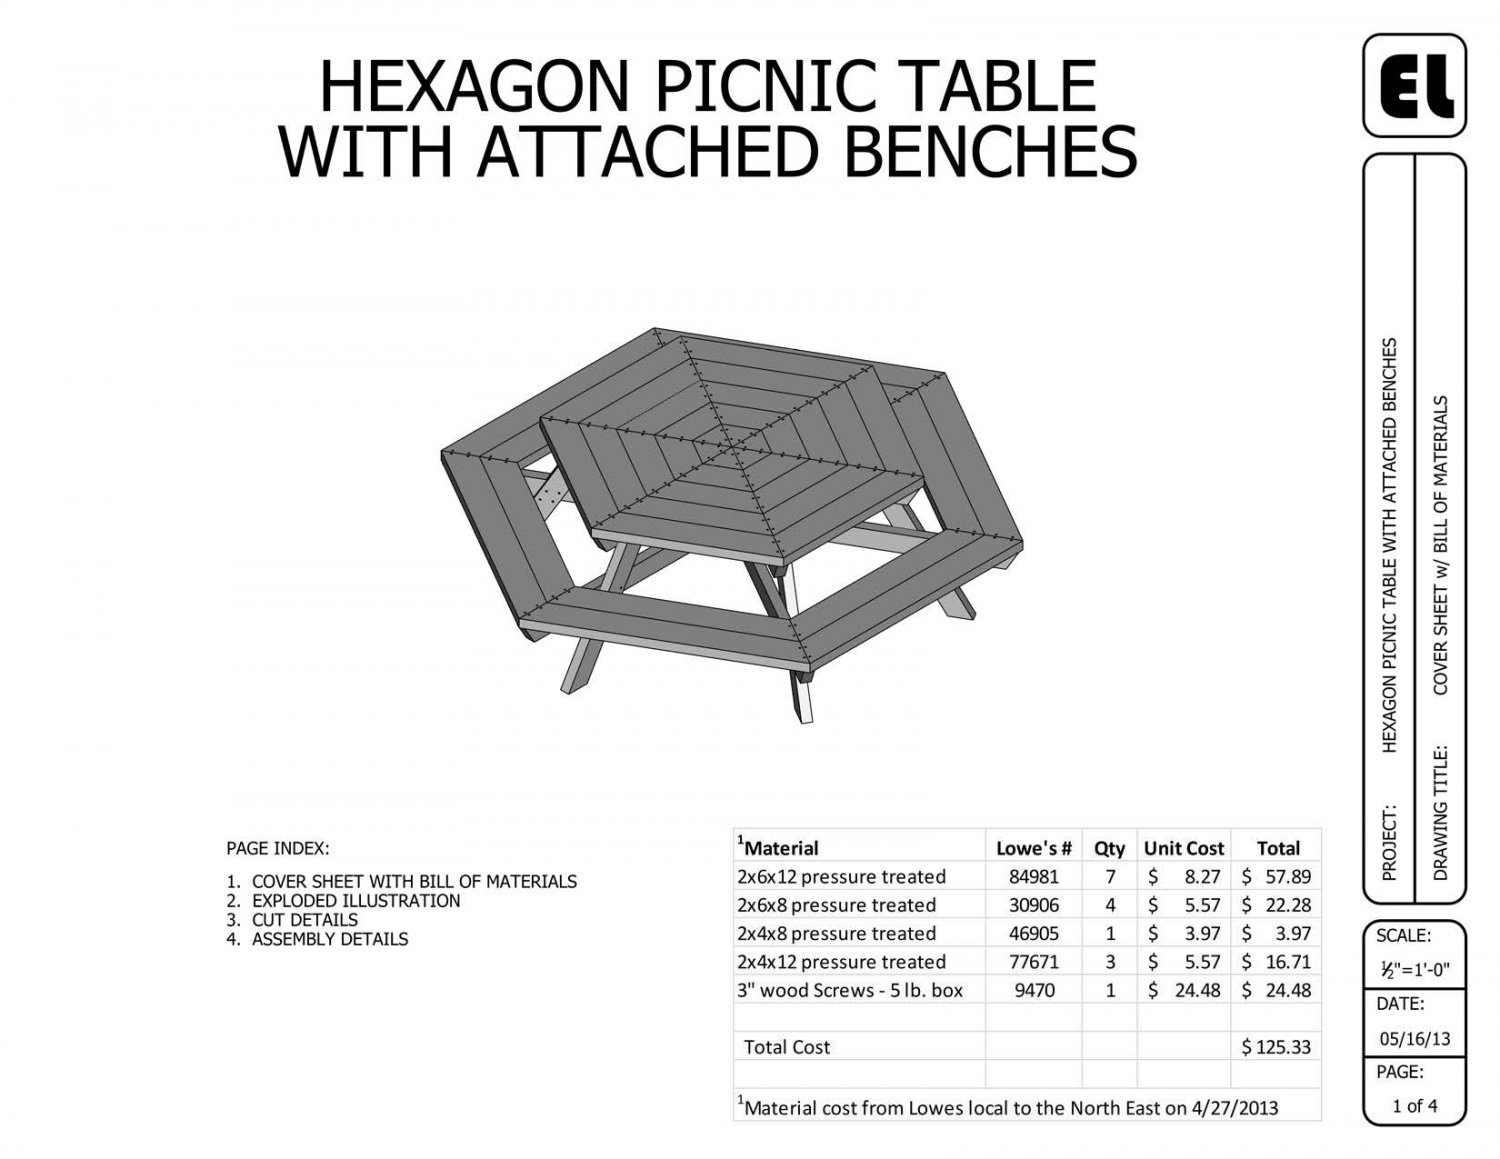 Hexagon Picnic Table Building Plans Blueprints DIY Do-It-Yourself ...